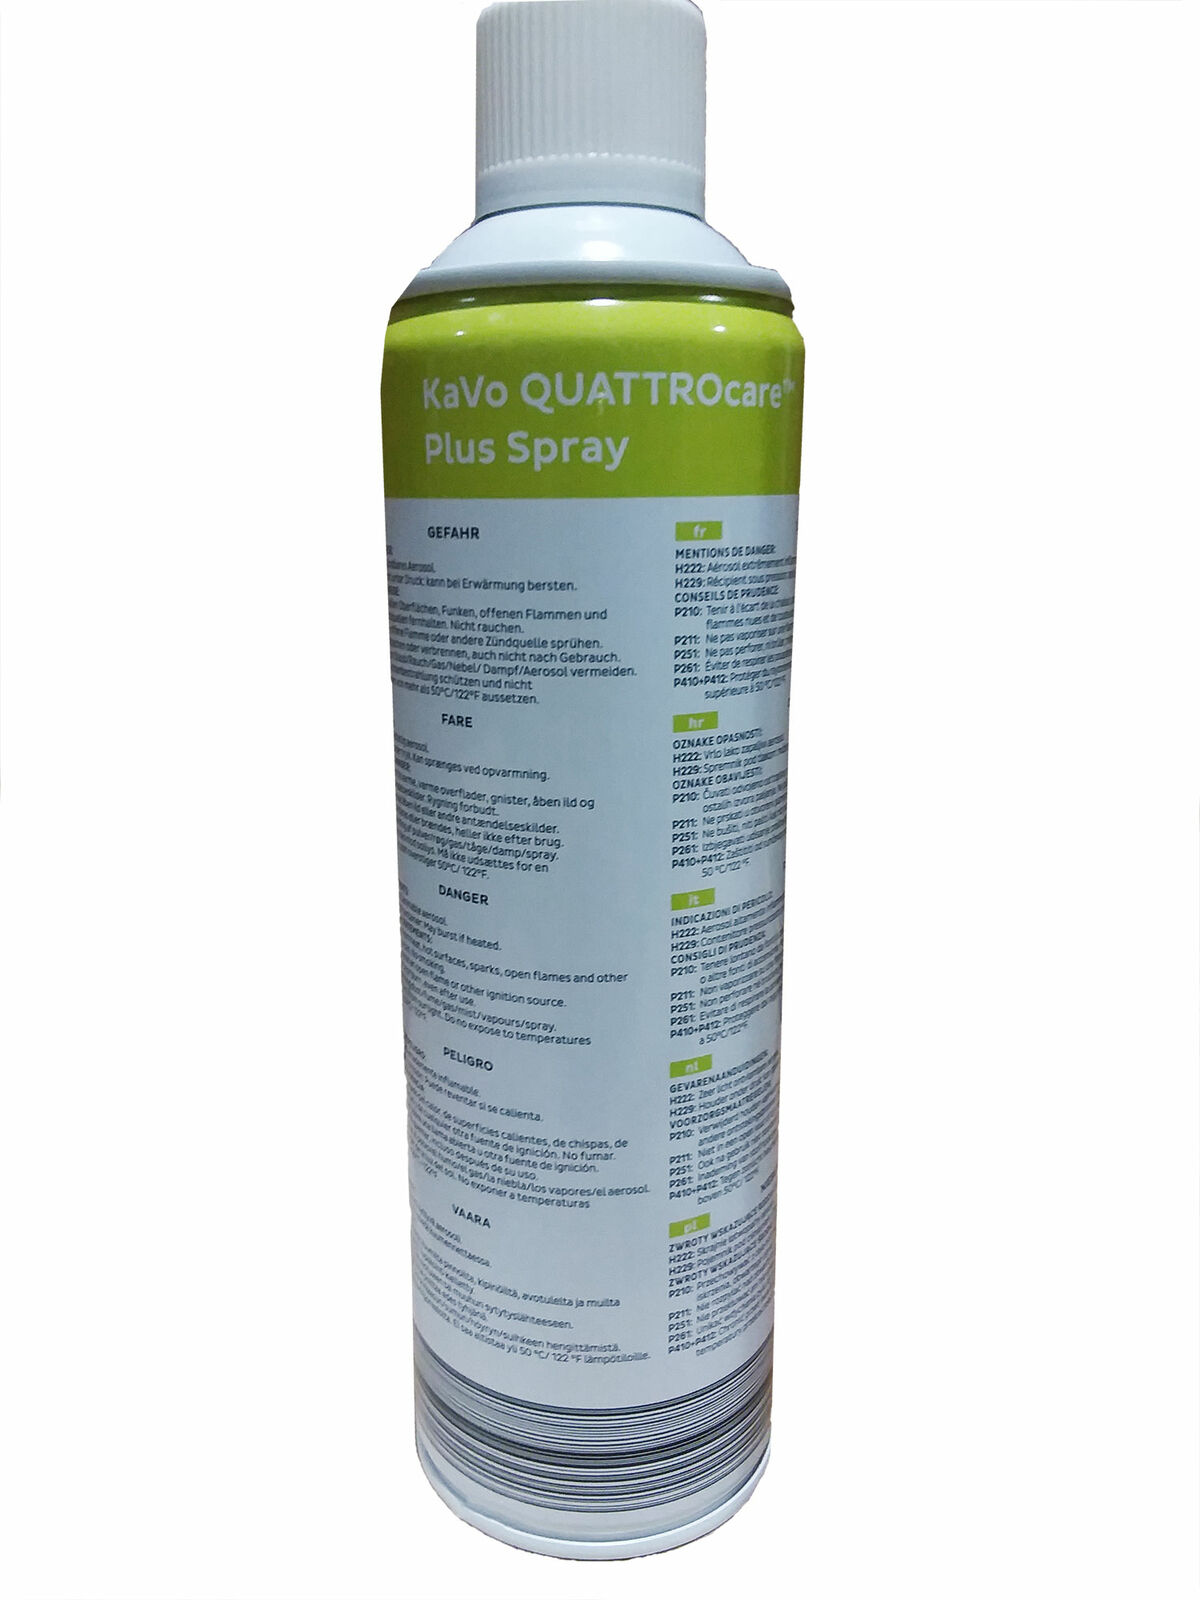 Kavo 1.005.4524 QUATTROcare Plus Spray for Instruments 500 mL Can 1.005.3844 Kavo 1.005.4524